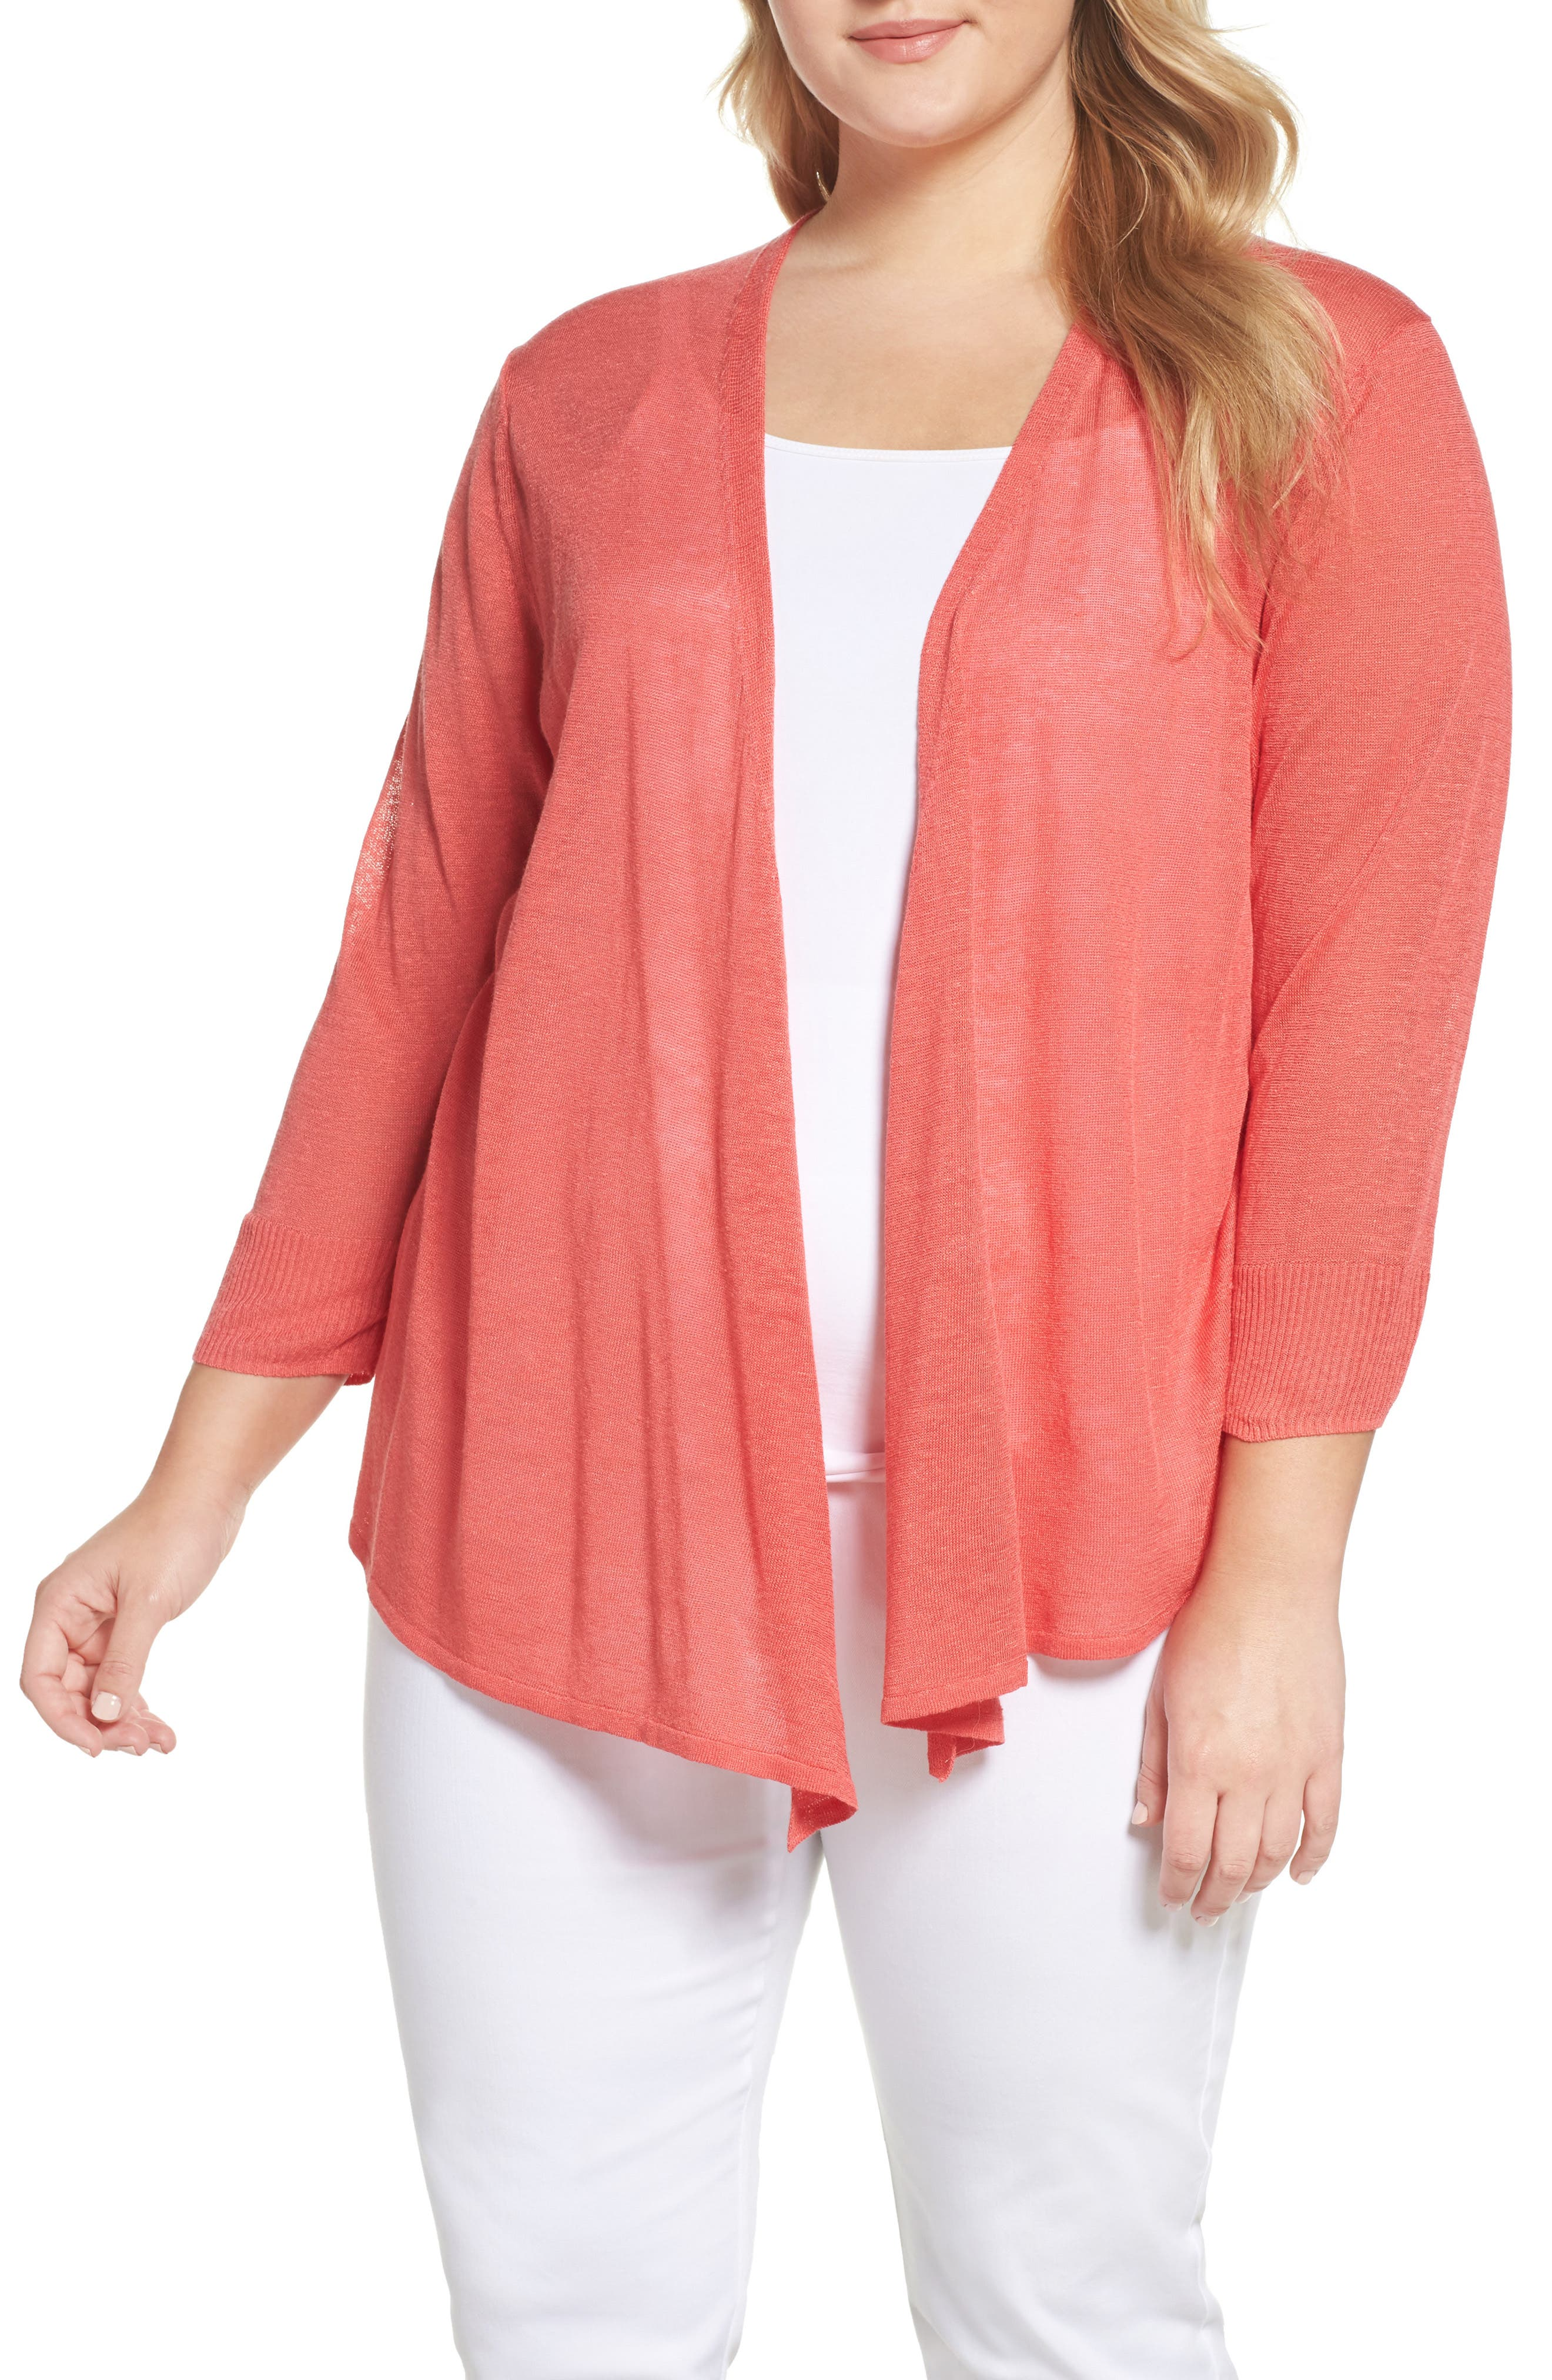 Alternate Image 1 Selected - NIC+ZOE Four-Way Convertible Cardigan (Plus Size)